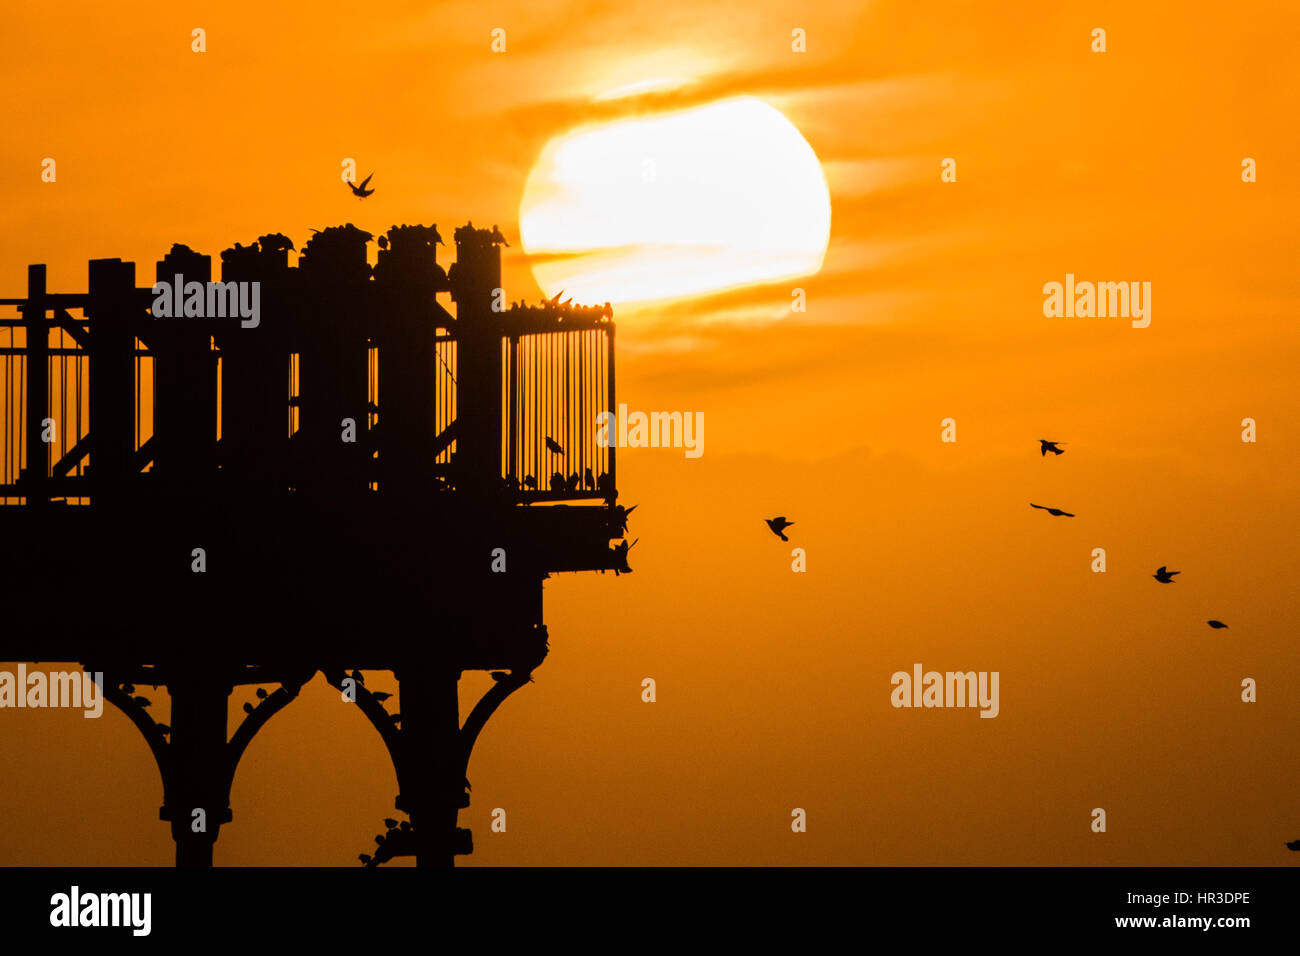 Aberystwyth Wales UK, Sunday 26 February 2017 UK weather: At sunset, flocks of starlings fly in to crowd together - Stock Image